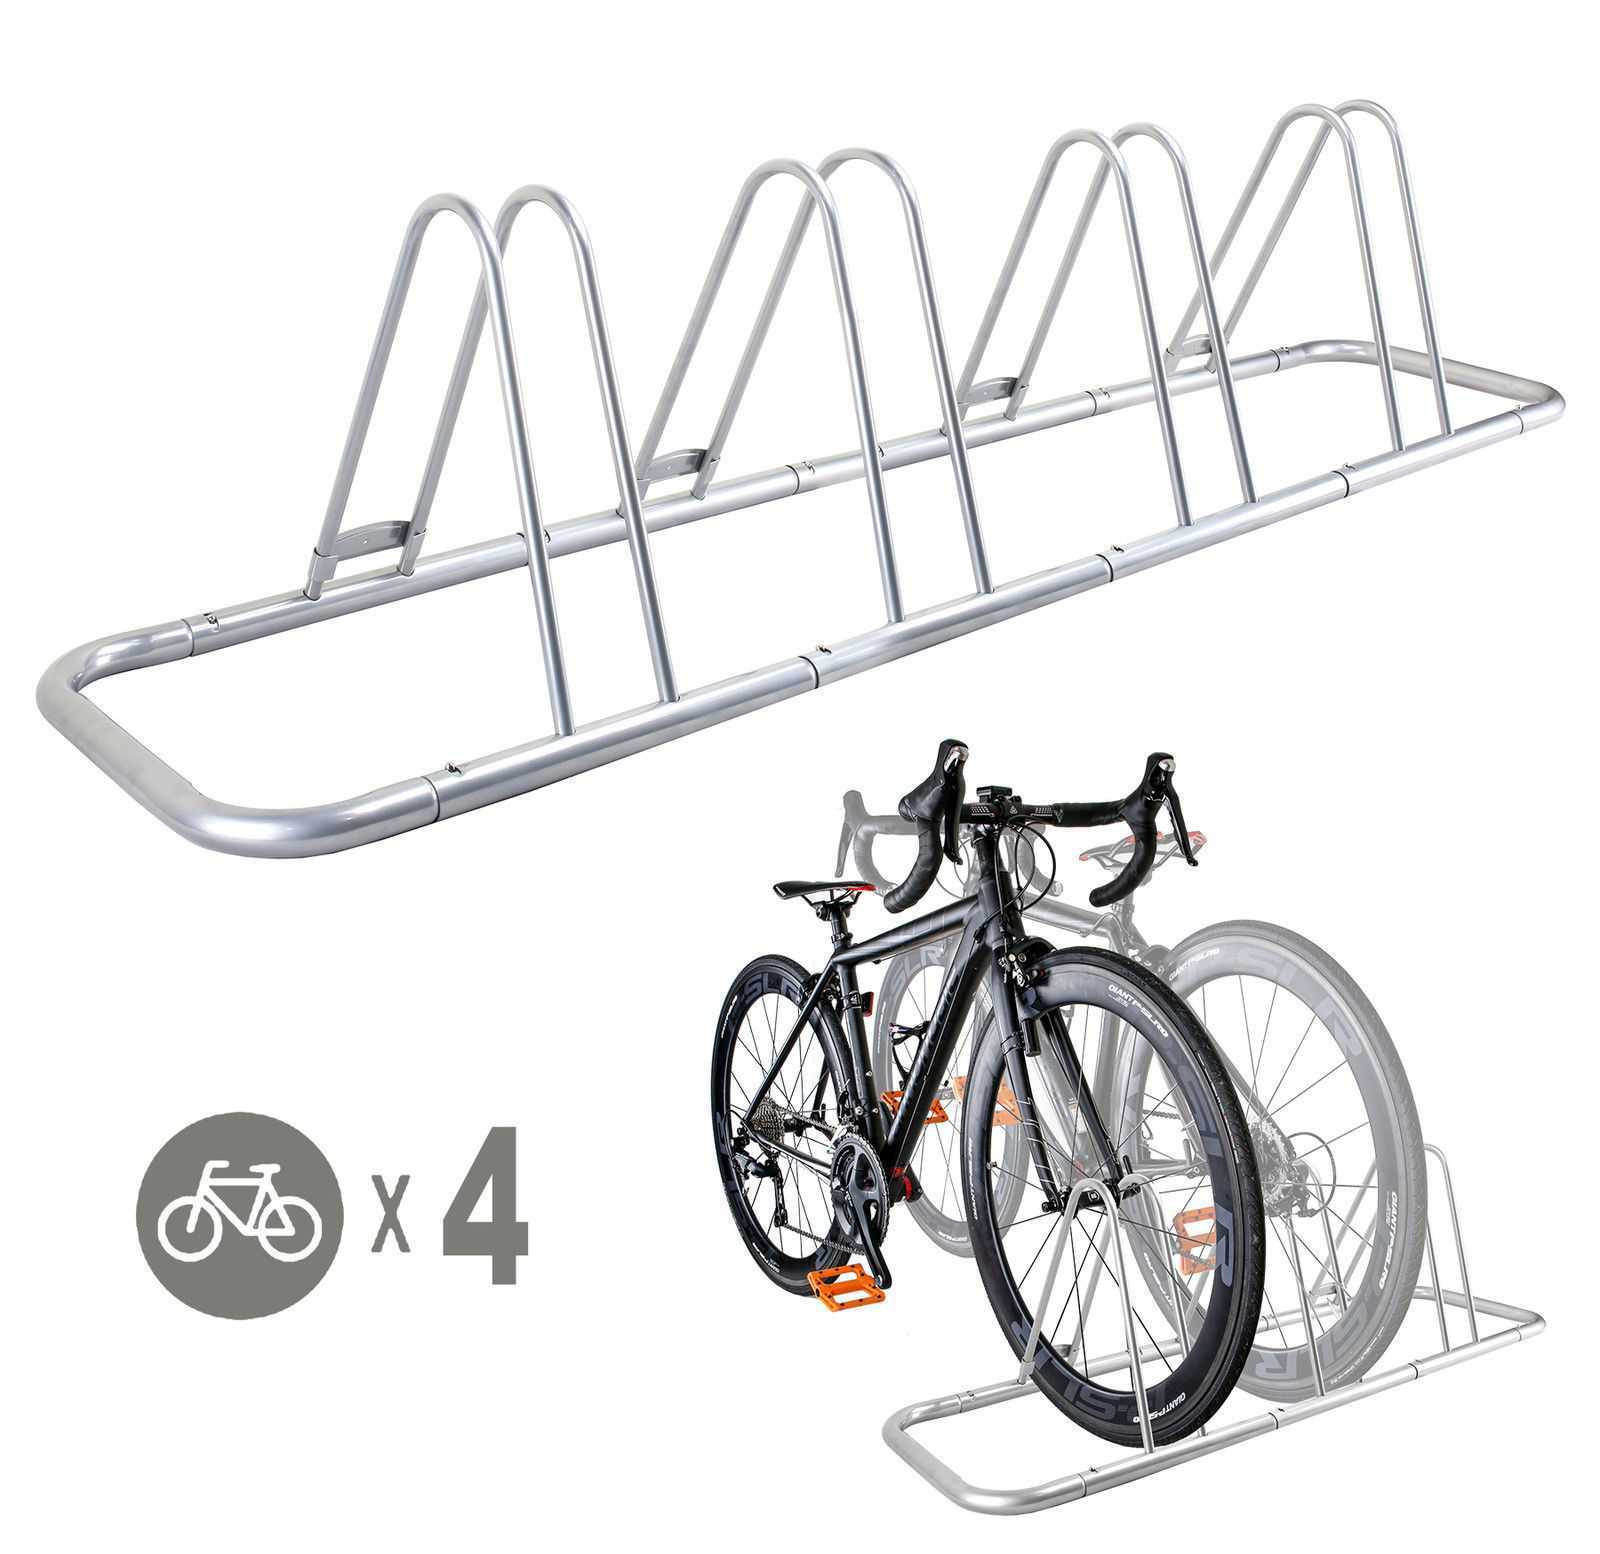 Buy 1 - 4 Bike Floor Parking Rack Storage Stand Bicycle | CD